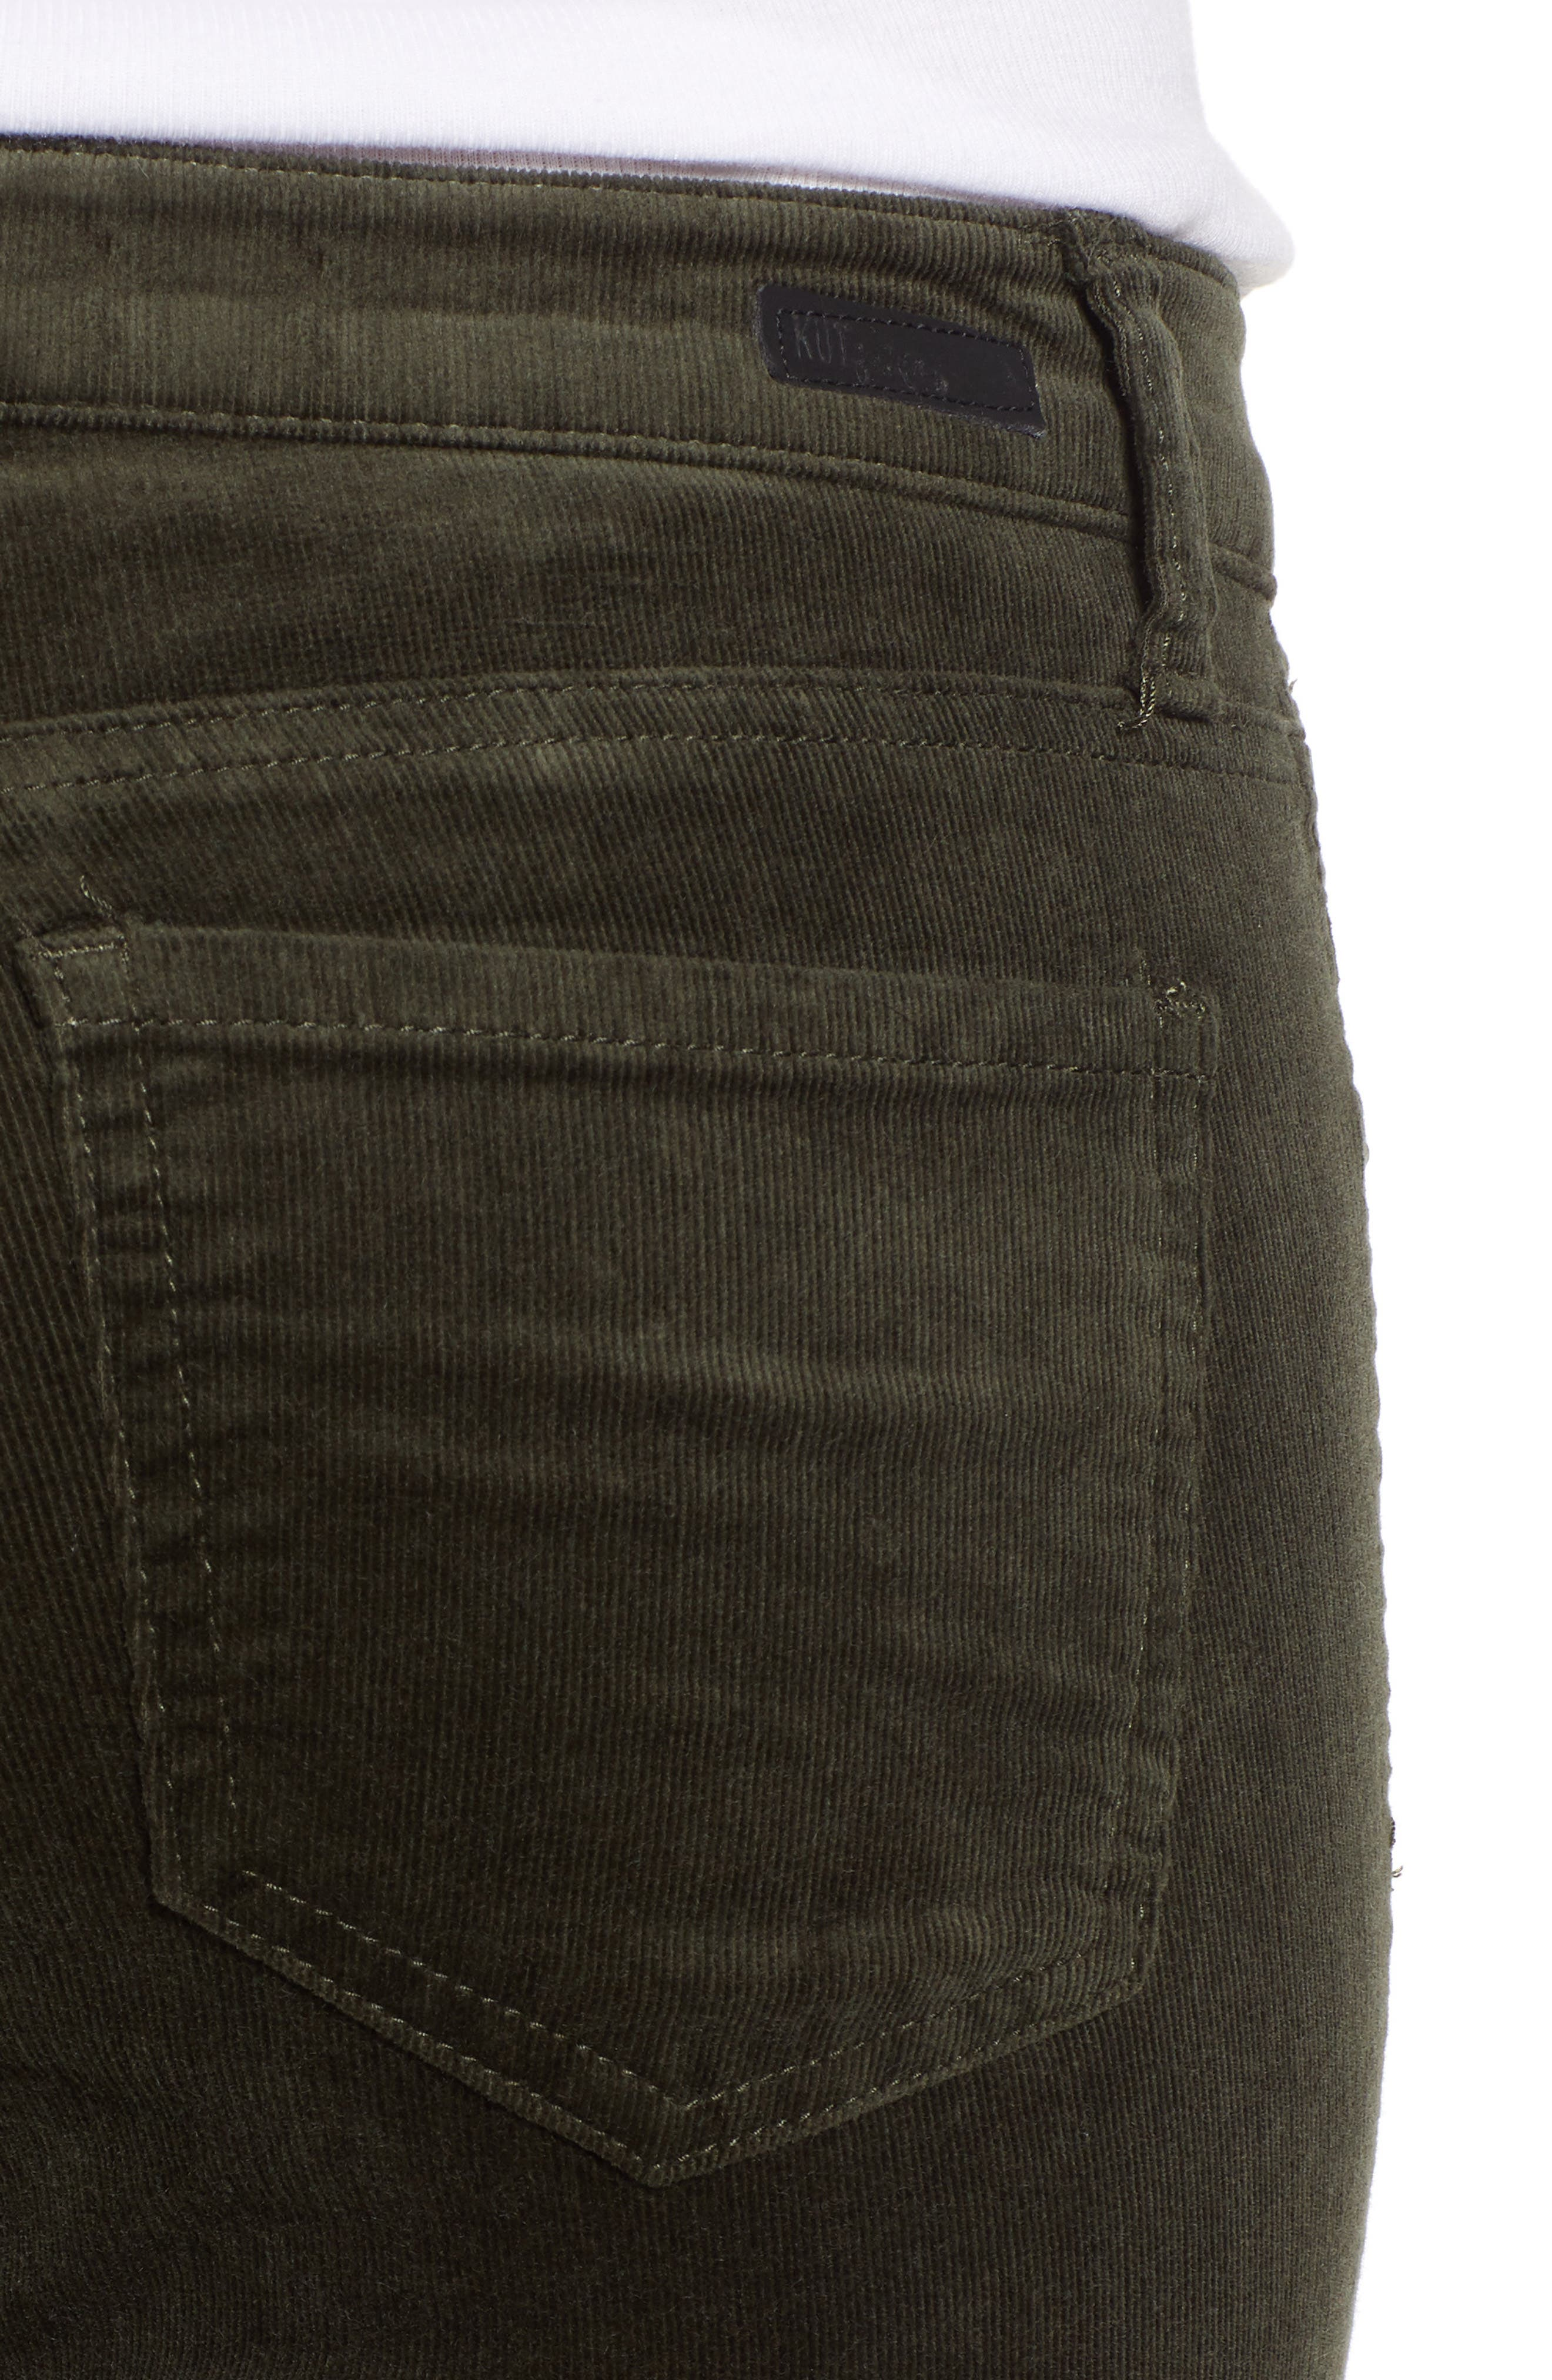 Baby Bootcut Corduroy Jeans,                             Alternate thumbnail 81, color,